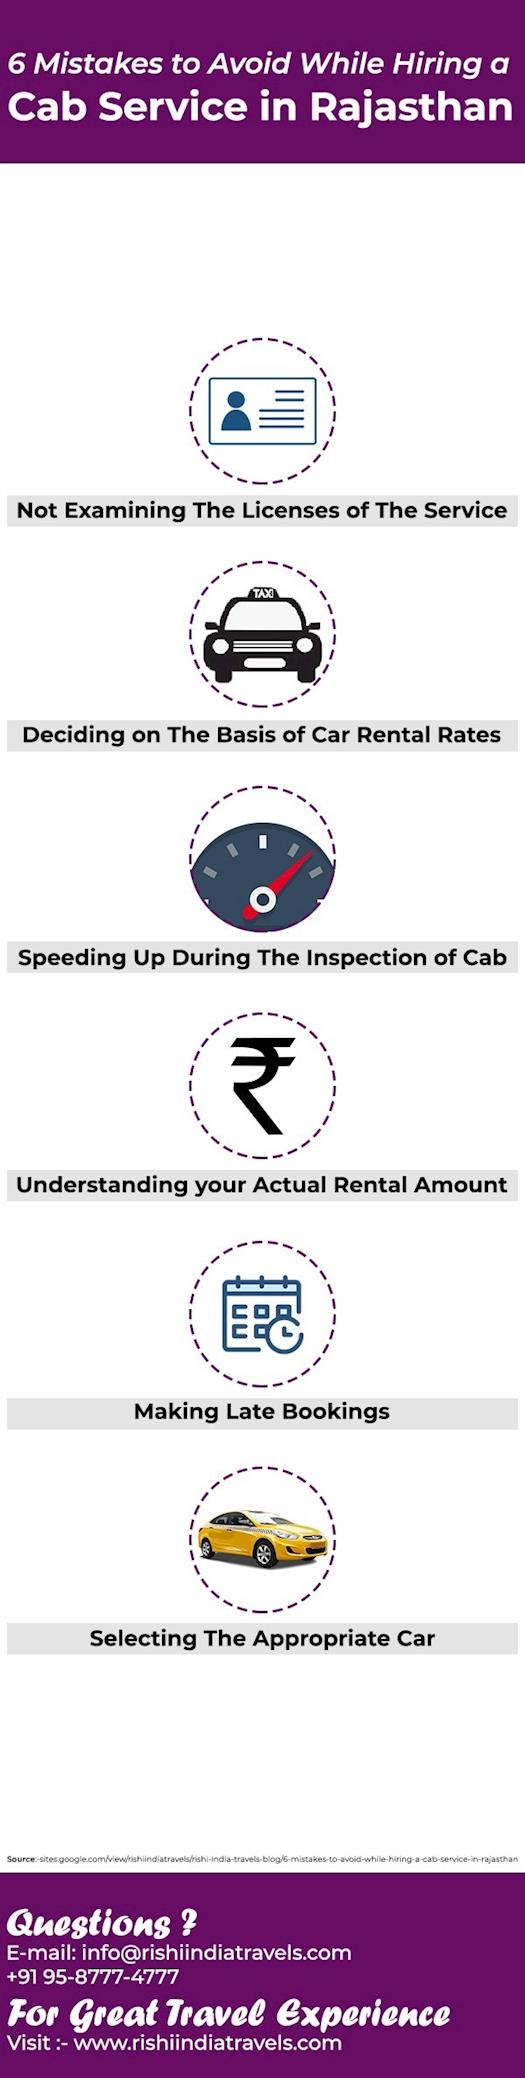 6 Mistakes to Avoid W hile Hiring a Cab Service in Rajasthan